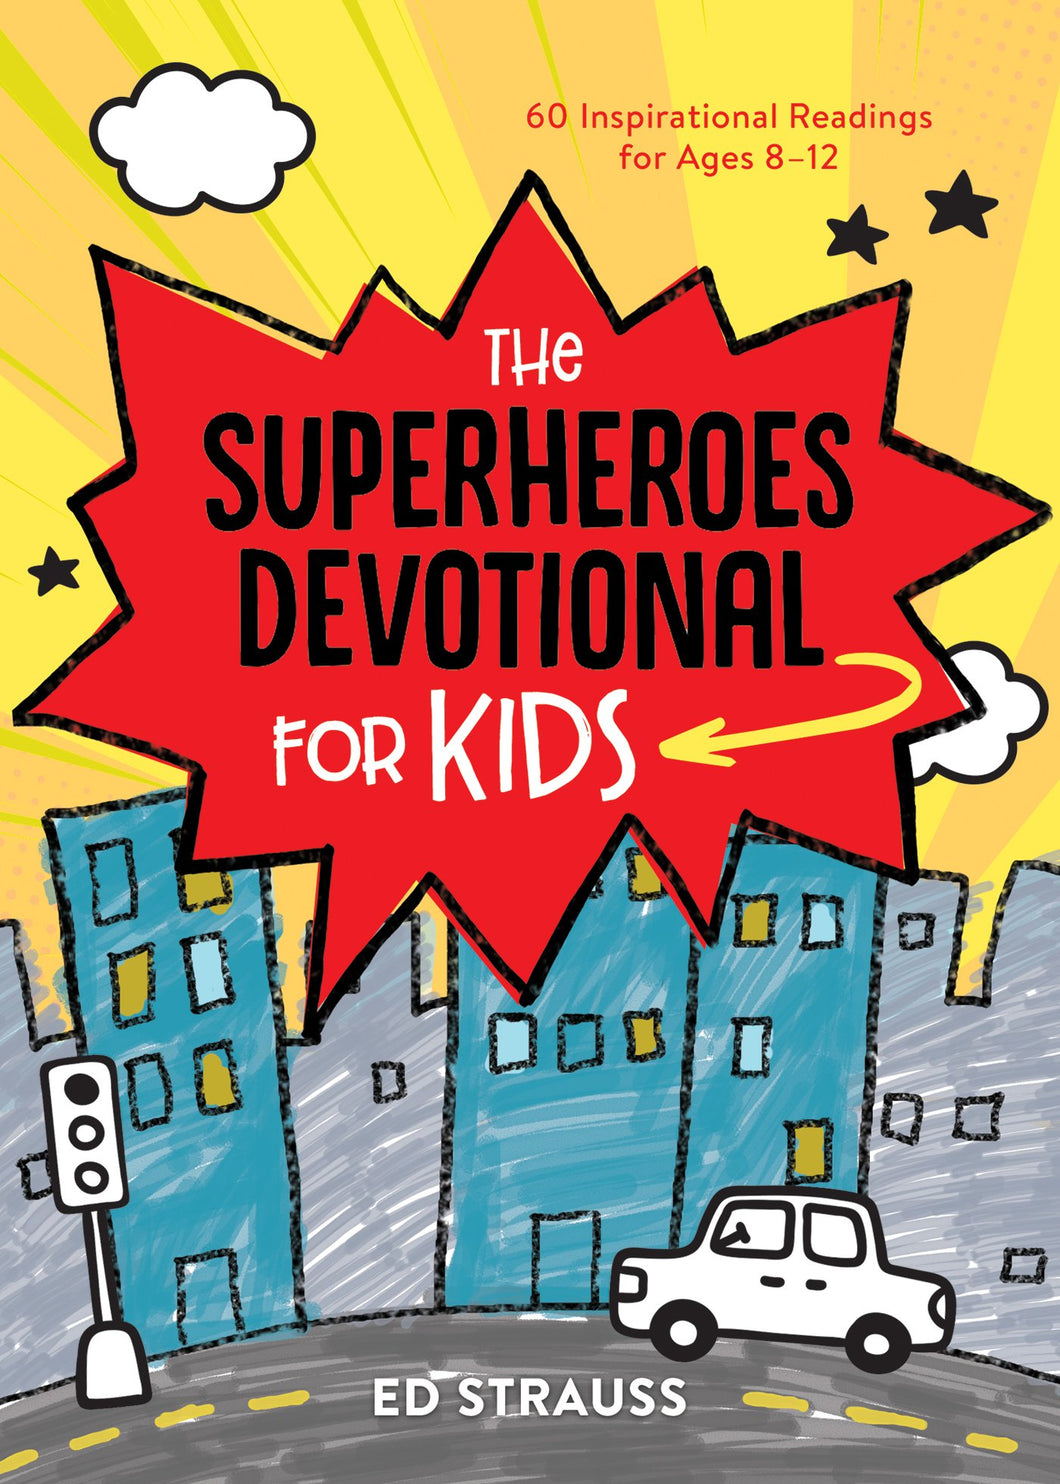 The Superheroes Devotional for Kids (Ed Strauss)